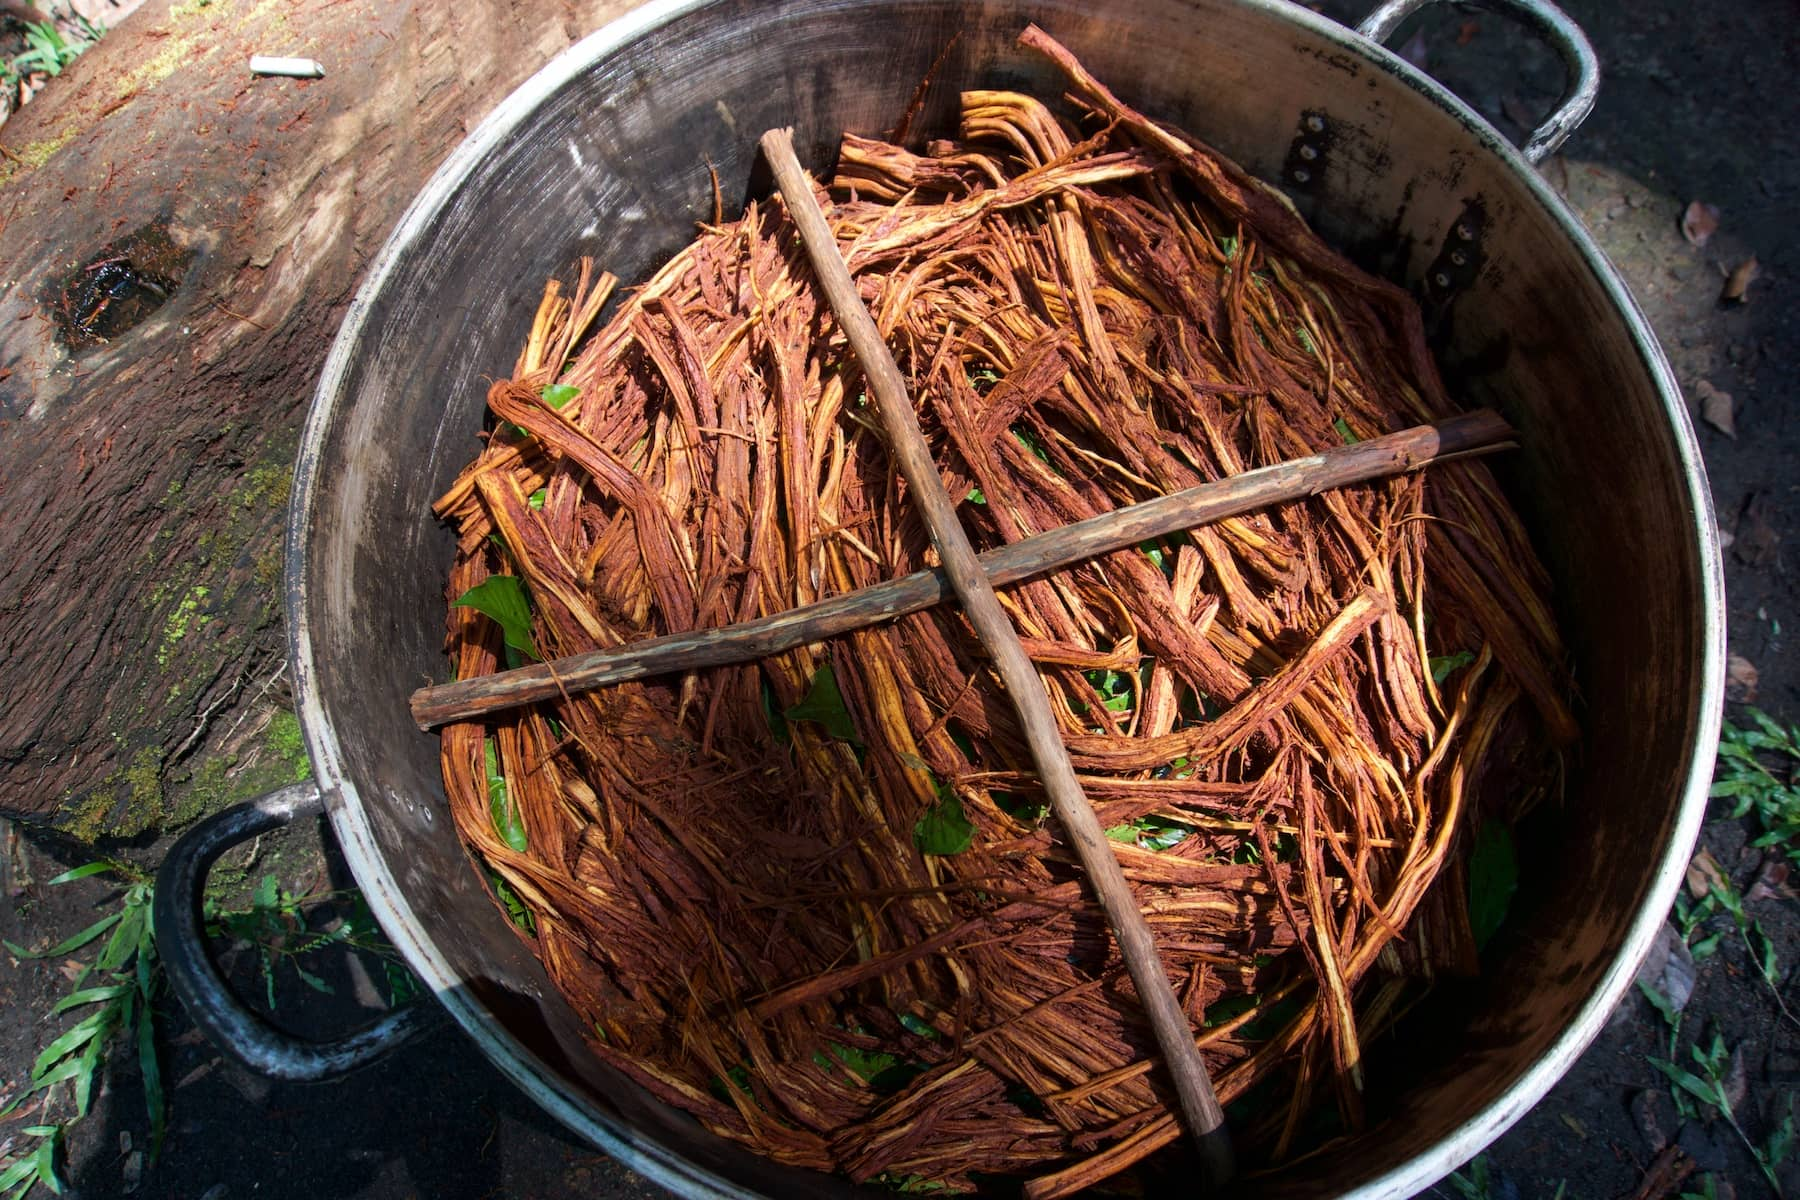 Ayahuasca medicine ready for water and boiling